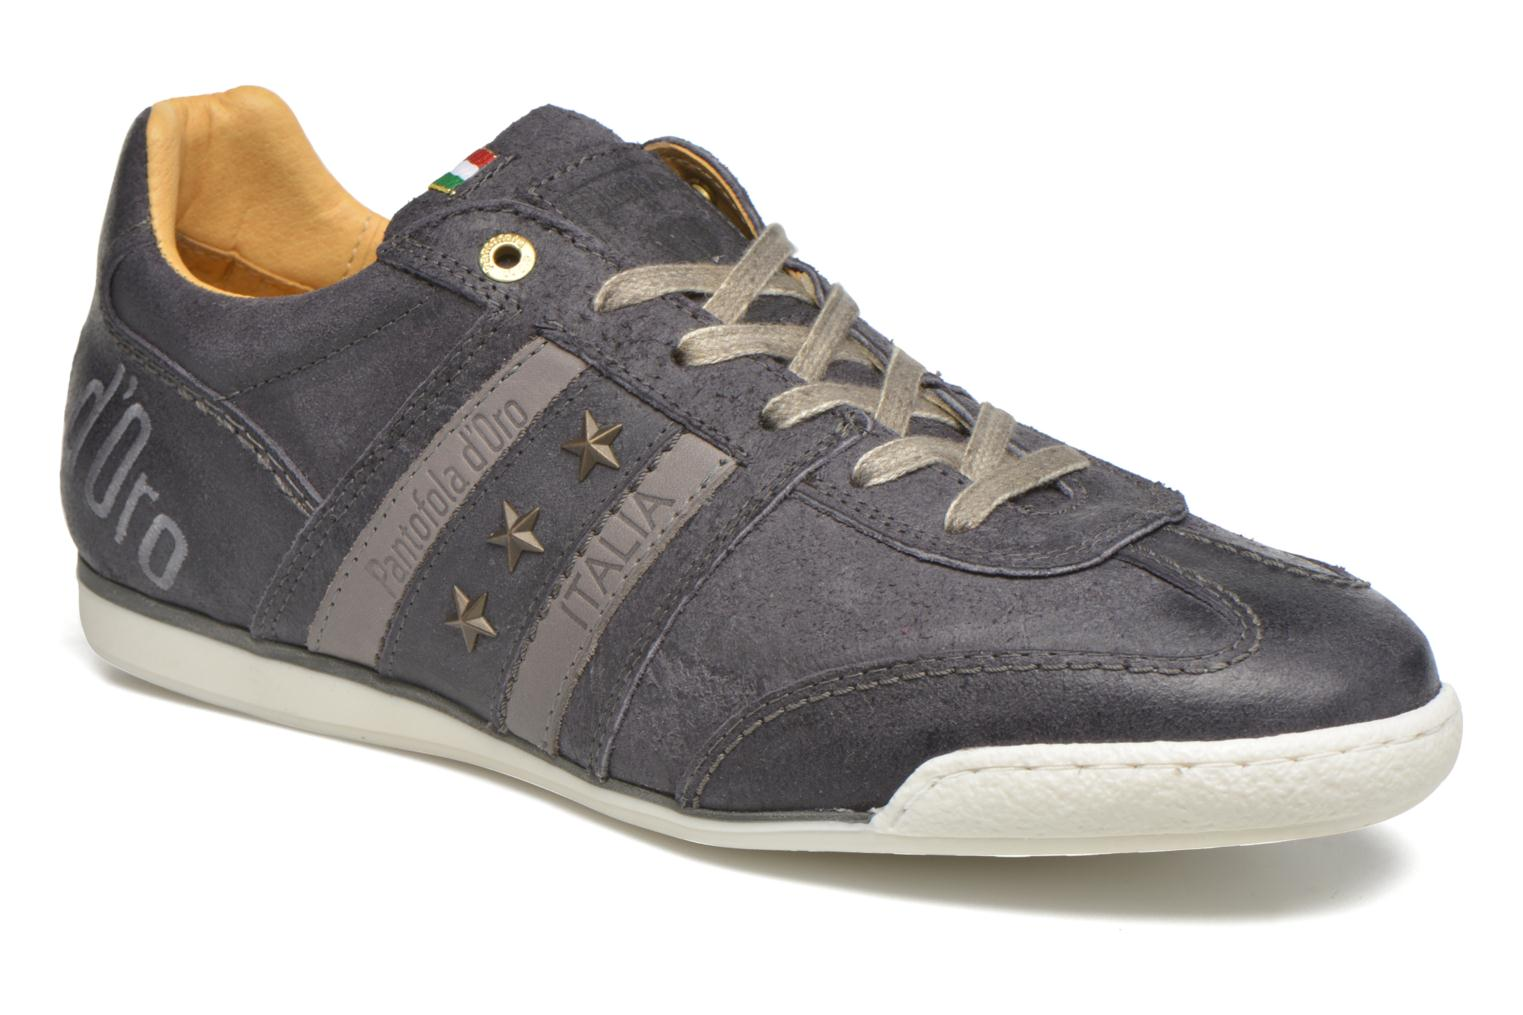 Sneakers Ascoli New Vintage Low Men by Pantofola d'Oro